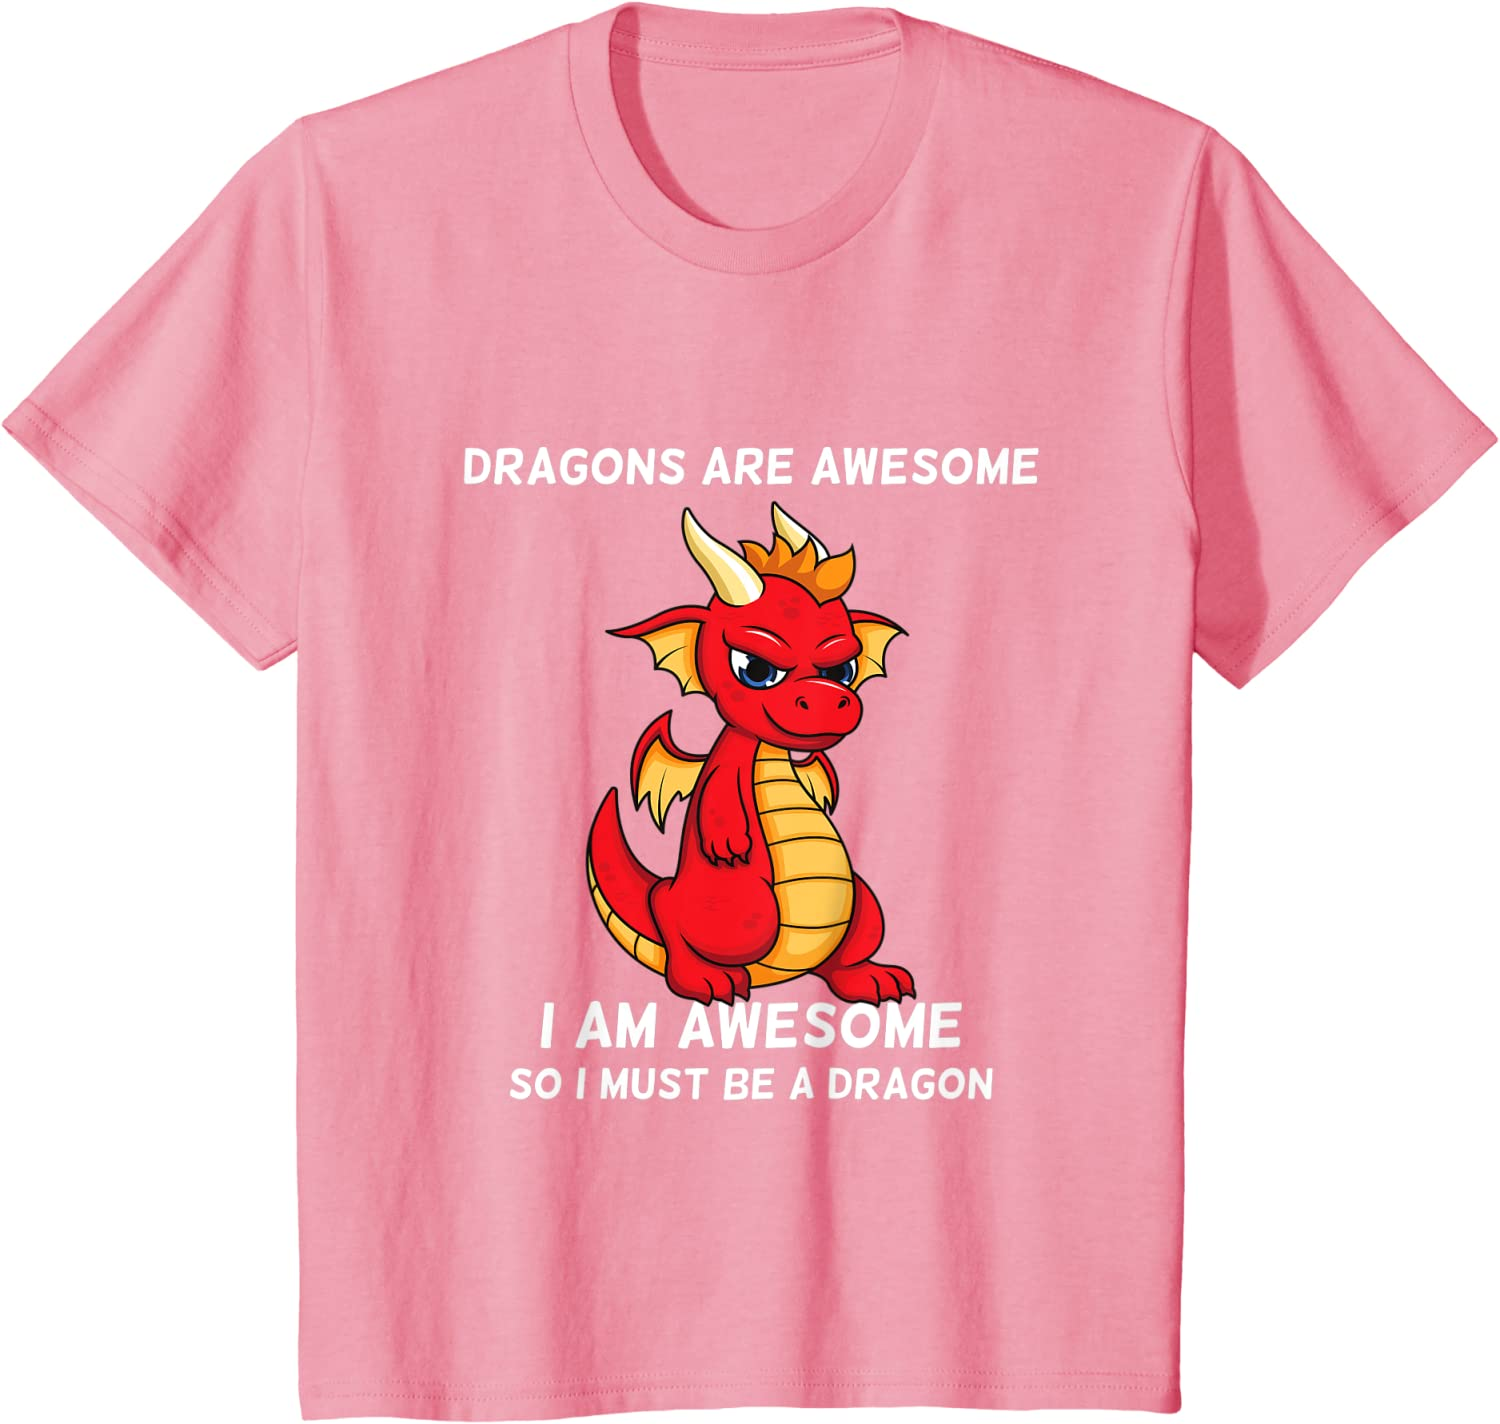 Child gift Let there be dragons top charcoal top rainbow dragons short sleeve tee sizes newborn to five years long sleeve top